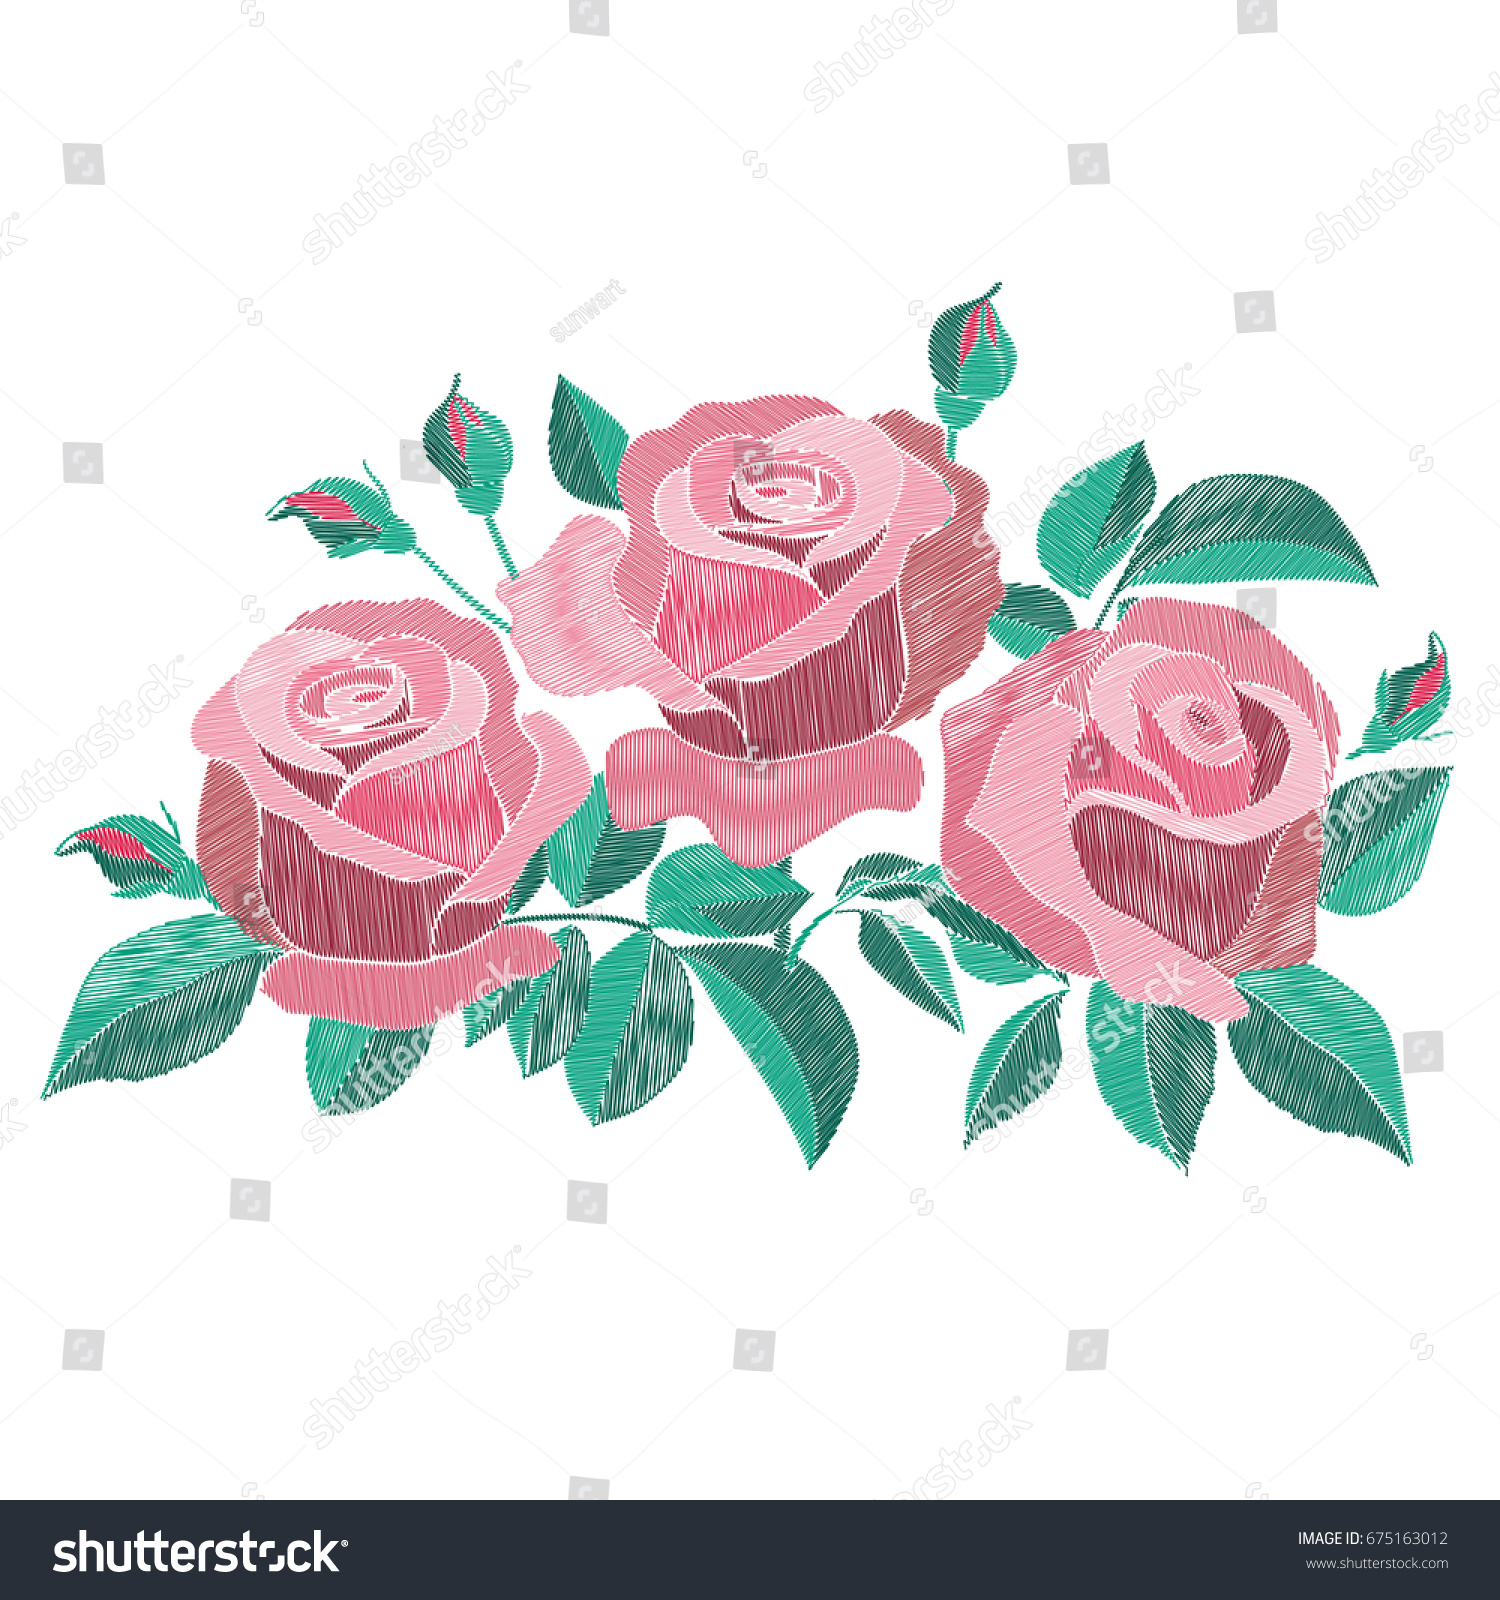 Red Pink Embroidery Roses Bush Leaves Stock Vector 675163012